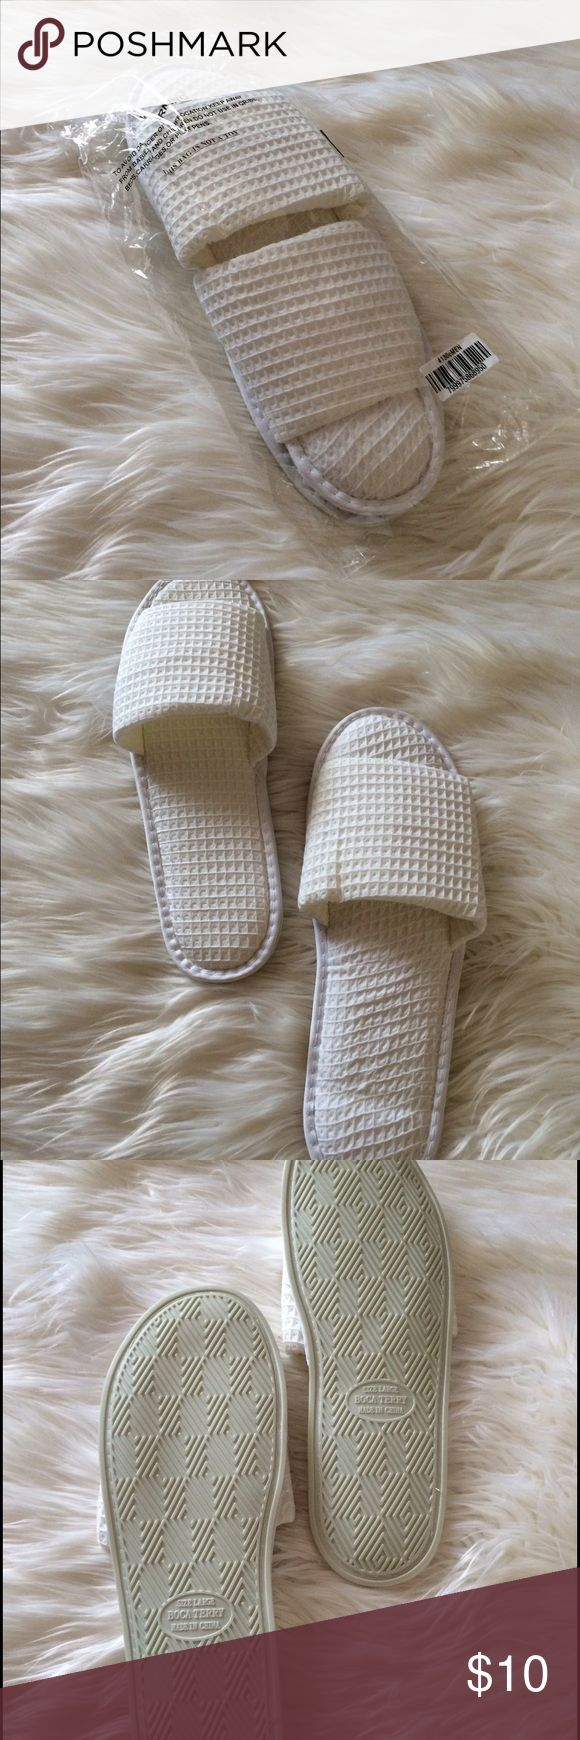 Spa slippers White size large Boca Terry spa slippers. New in package. Boca Terry Shoes Slippers